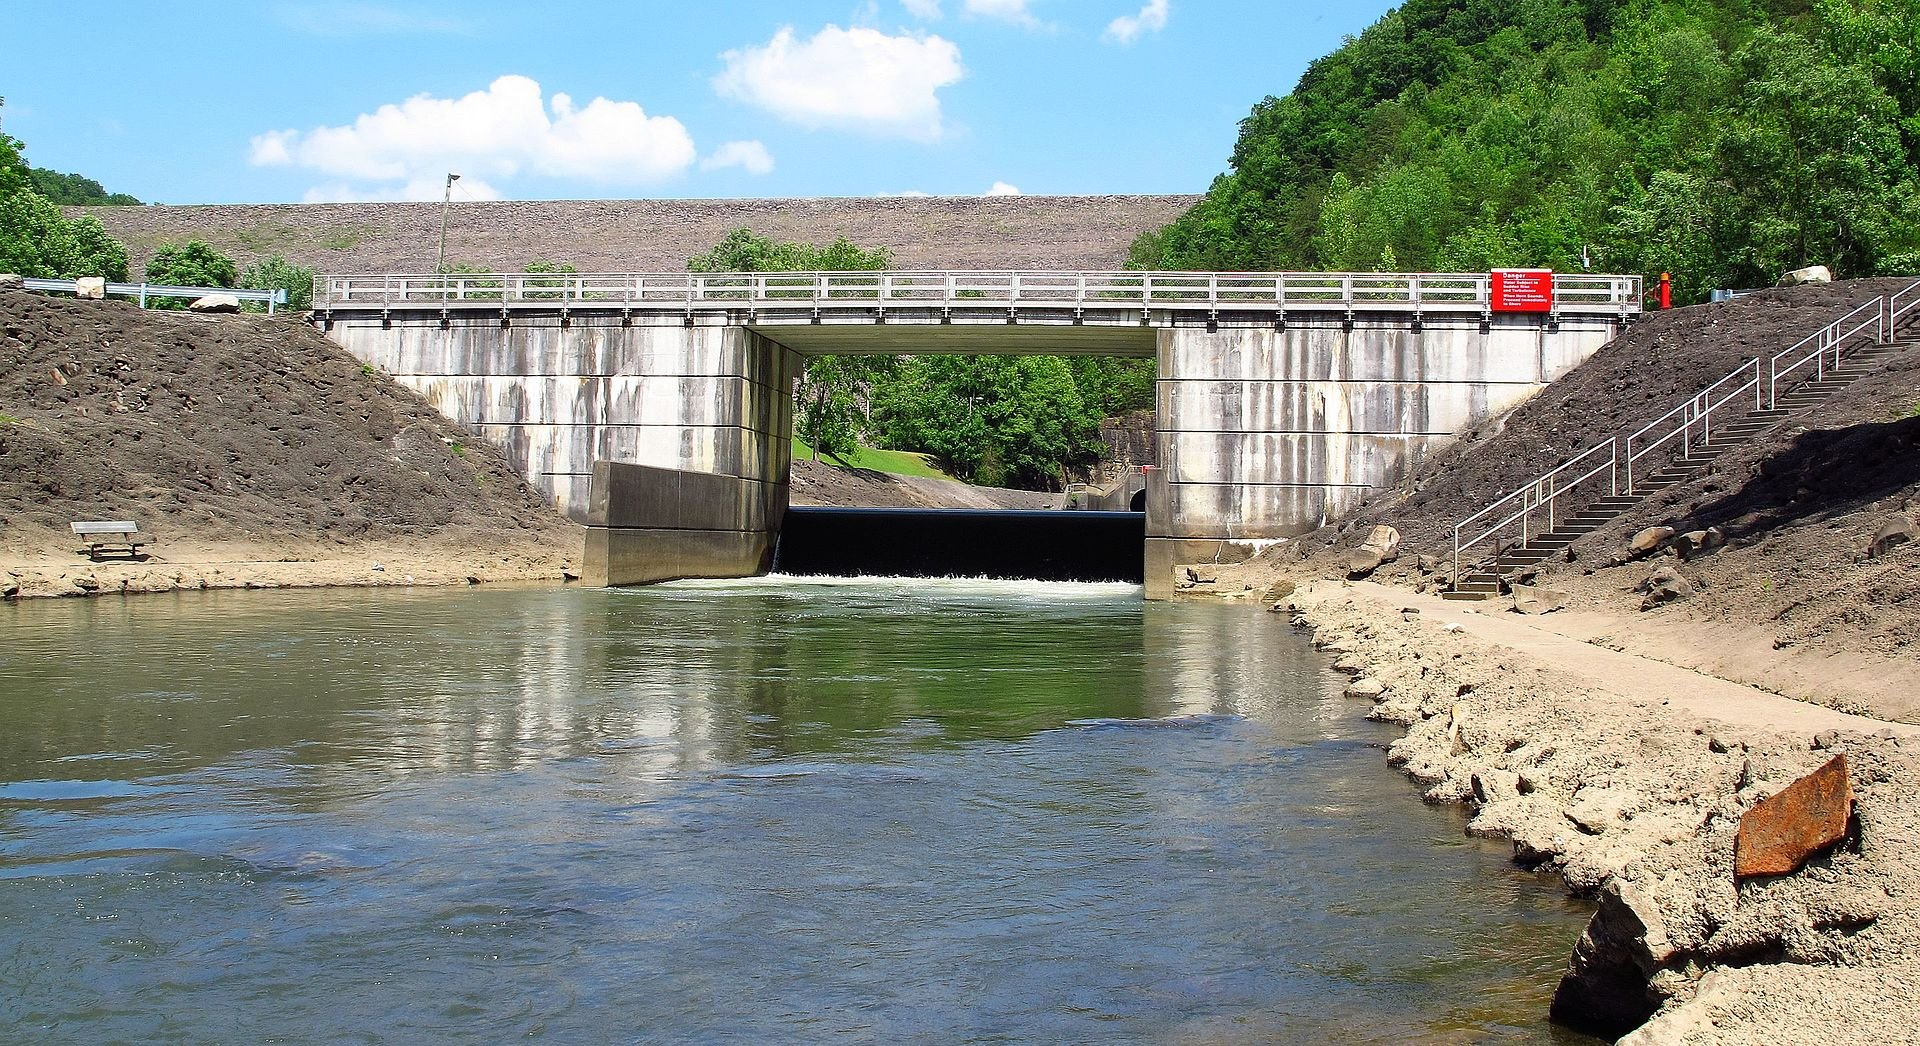 The outflow of the dam.